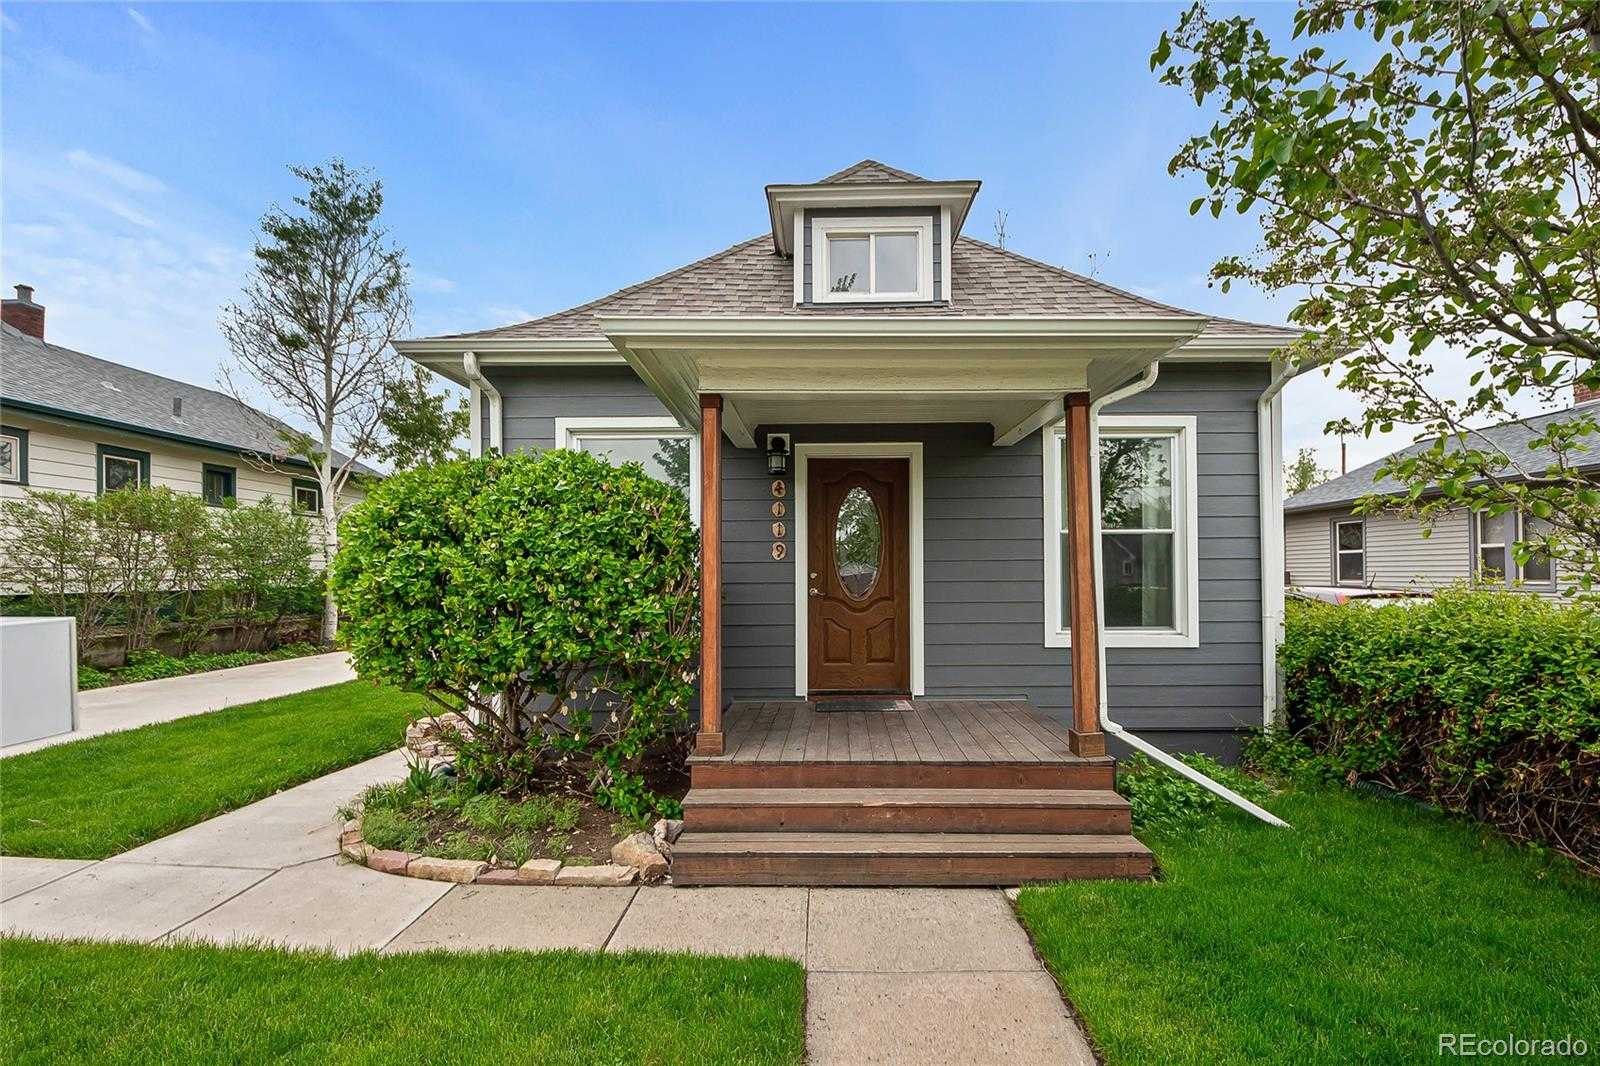 $575,000 - 3Br/2Ba -  for Sale in Mountain View, Denver